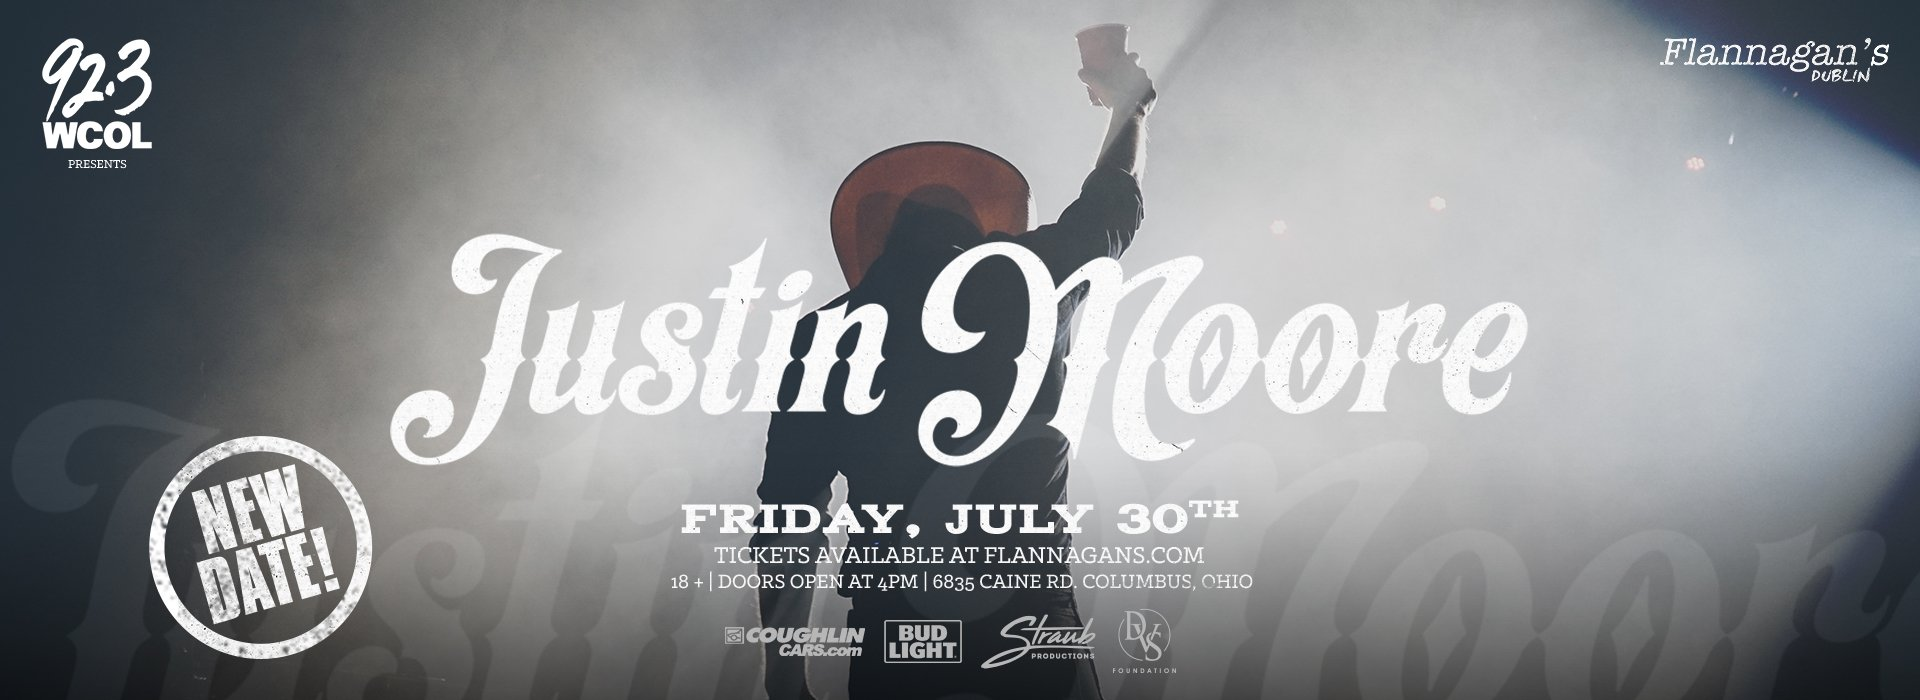 92.3 WCOL's Presents Justin Moore